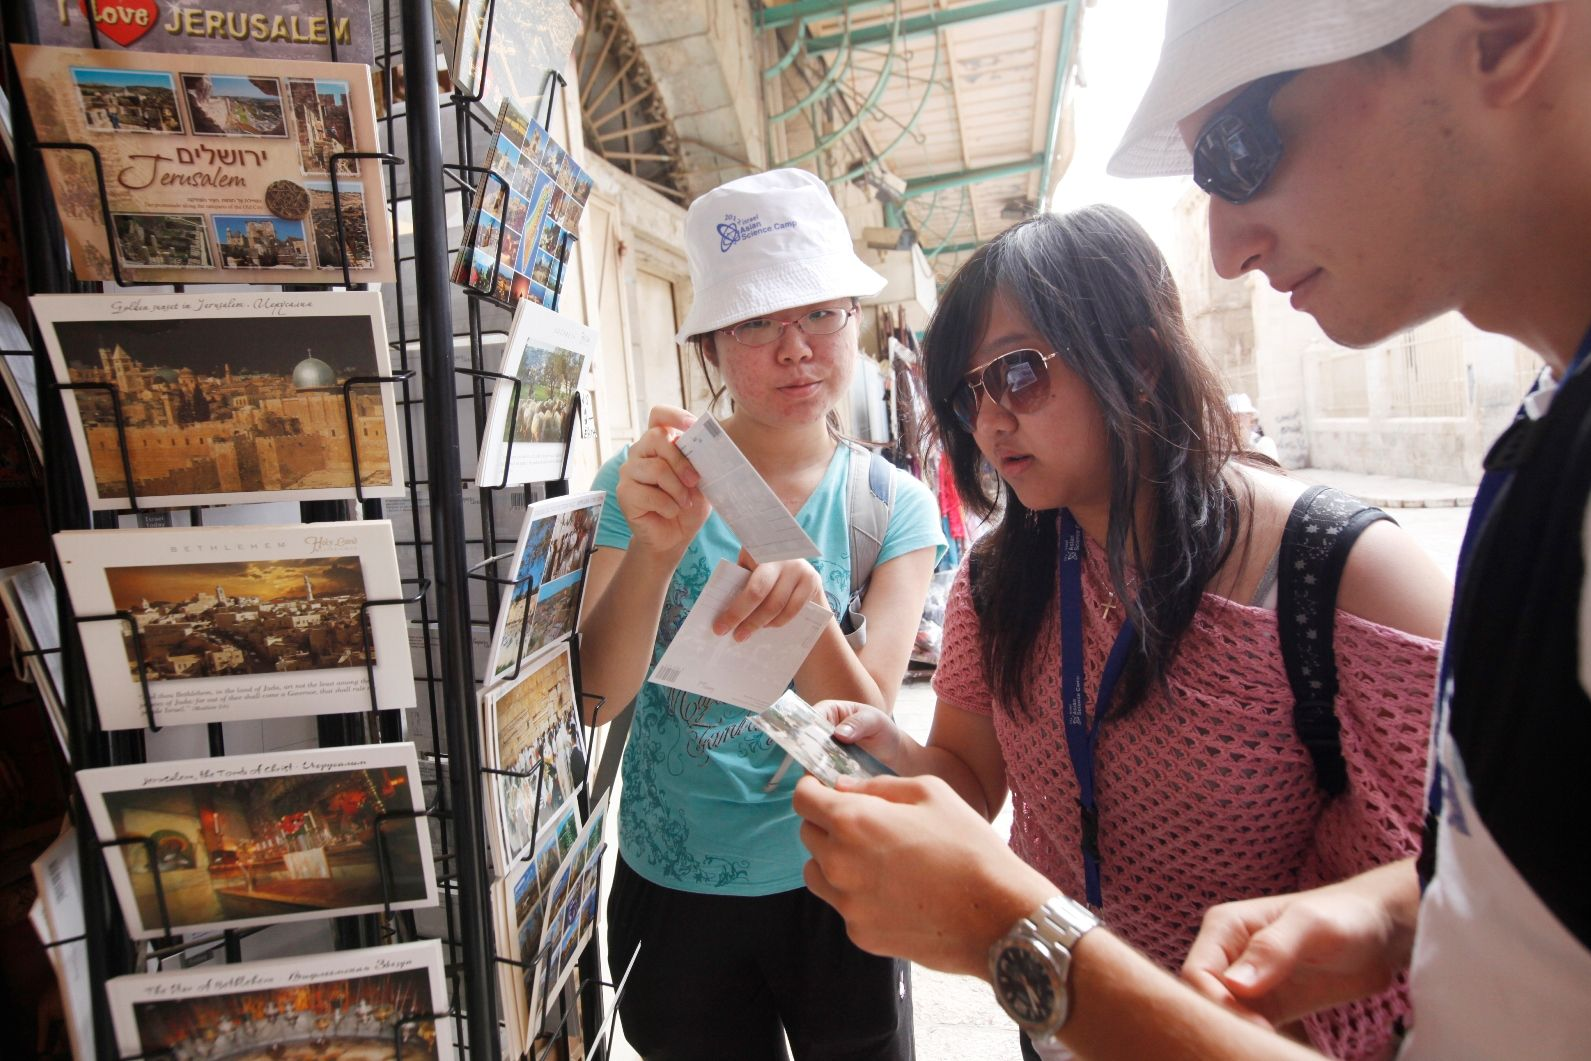 The Israel Tourism Ministry is expecting more tourists from the Far East. Photo by Miriam Alster/FLASH90